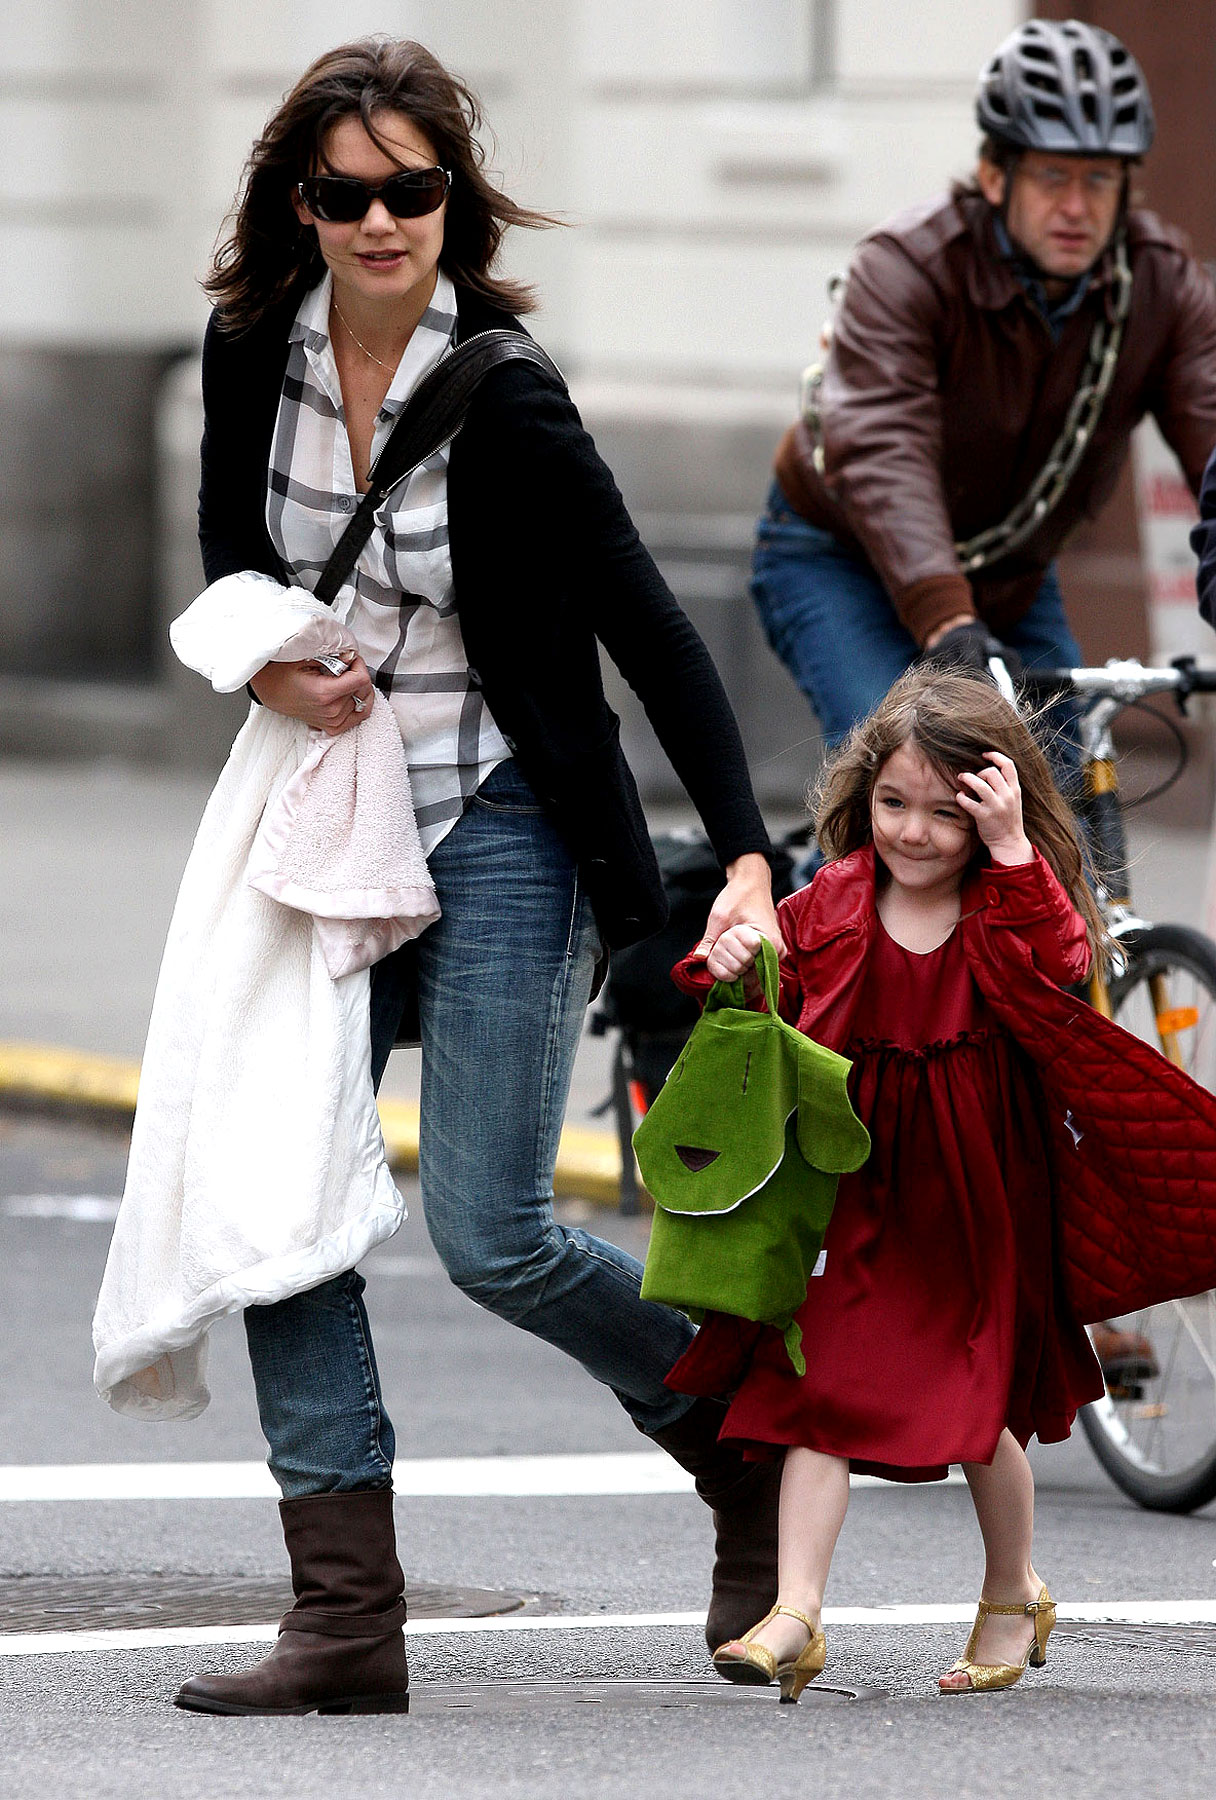 Katie Holmes: A Shoe-in For Worst Mother Award?